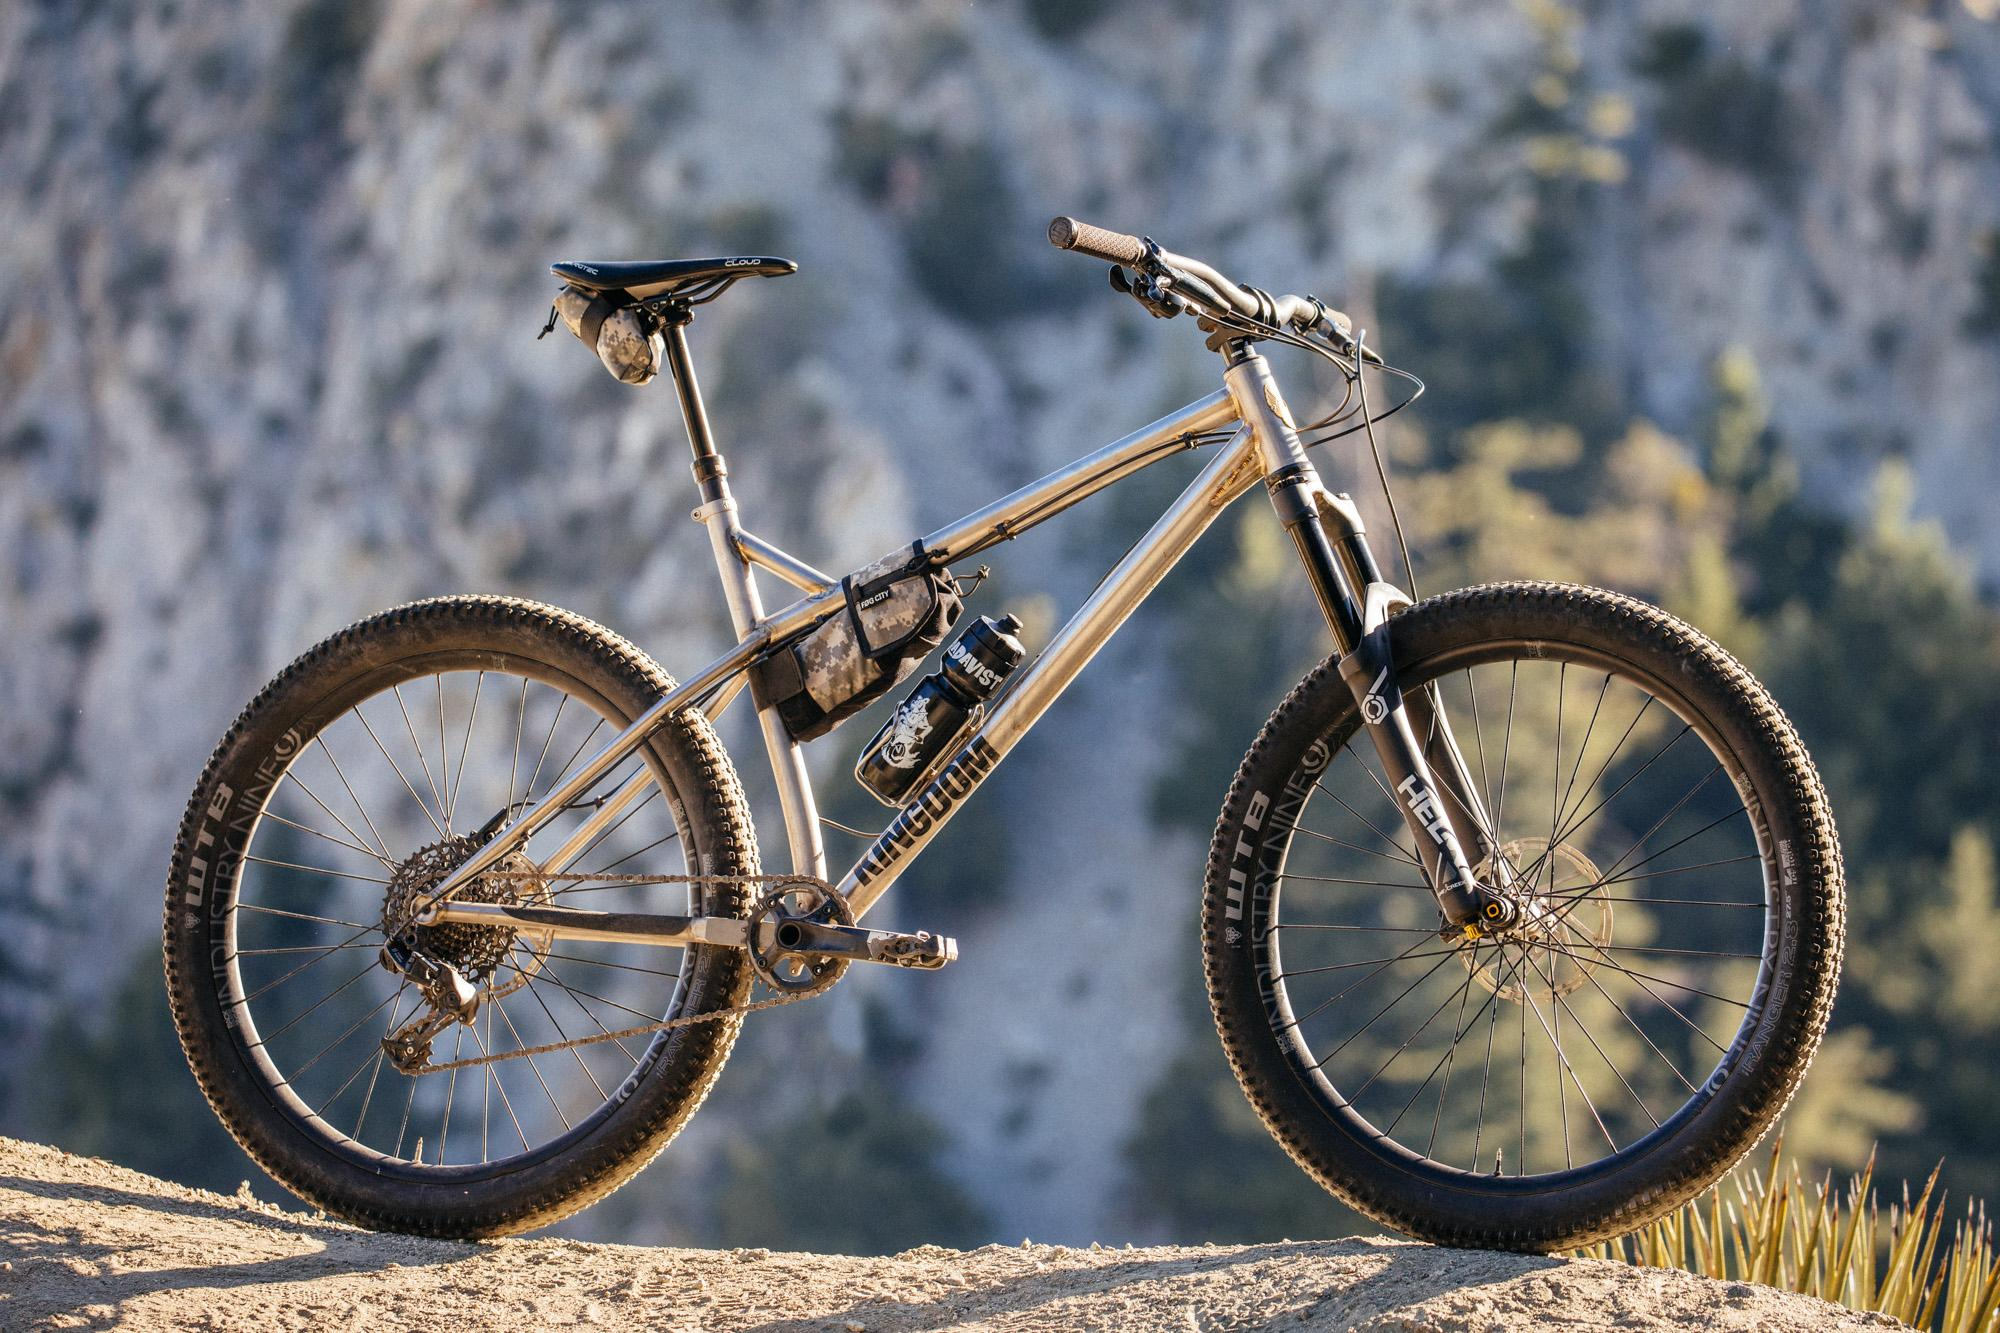 Rule the Mountain on the Kingdom Vendetta X2 Titanium 27.5+ Hardtail